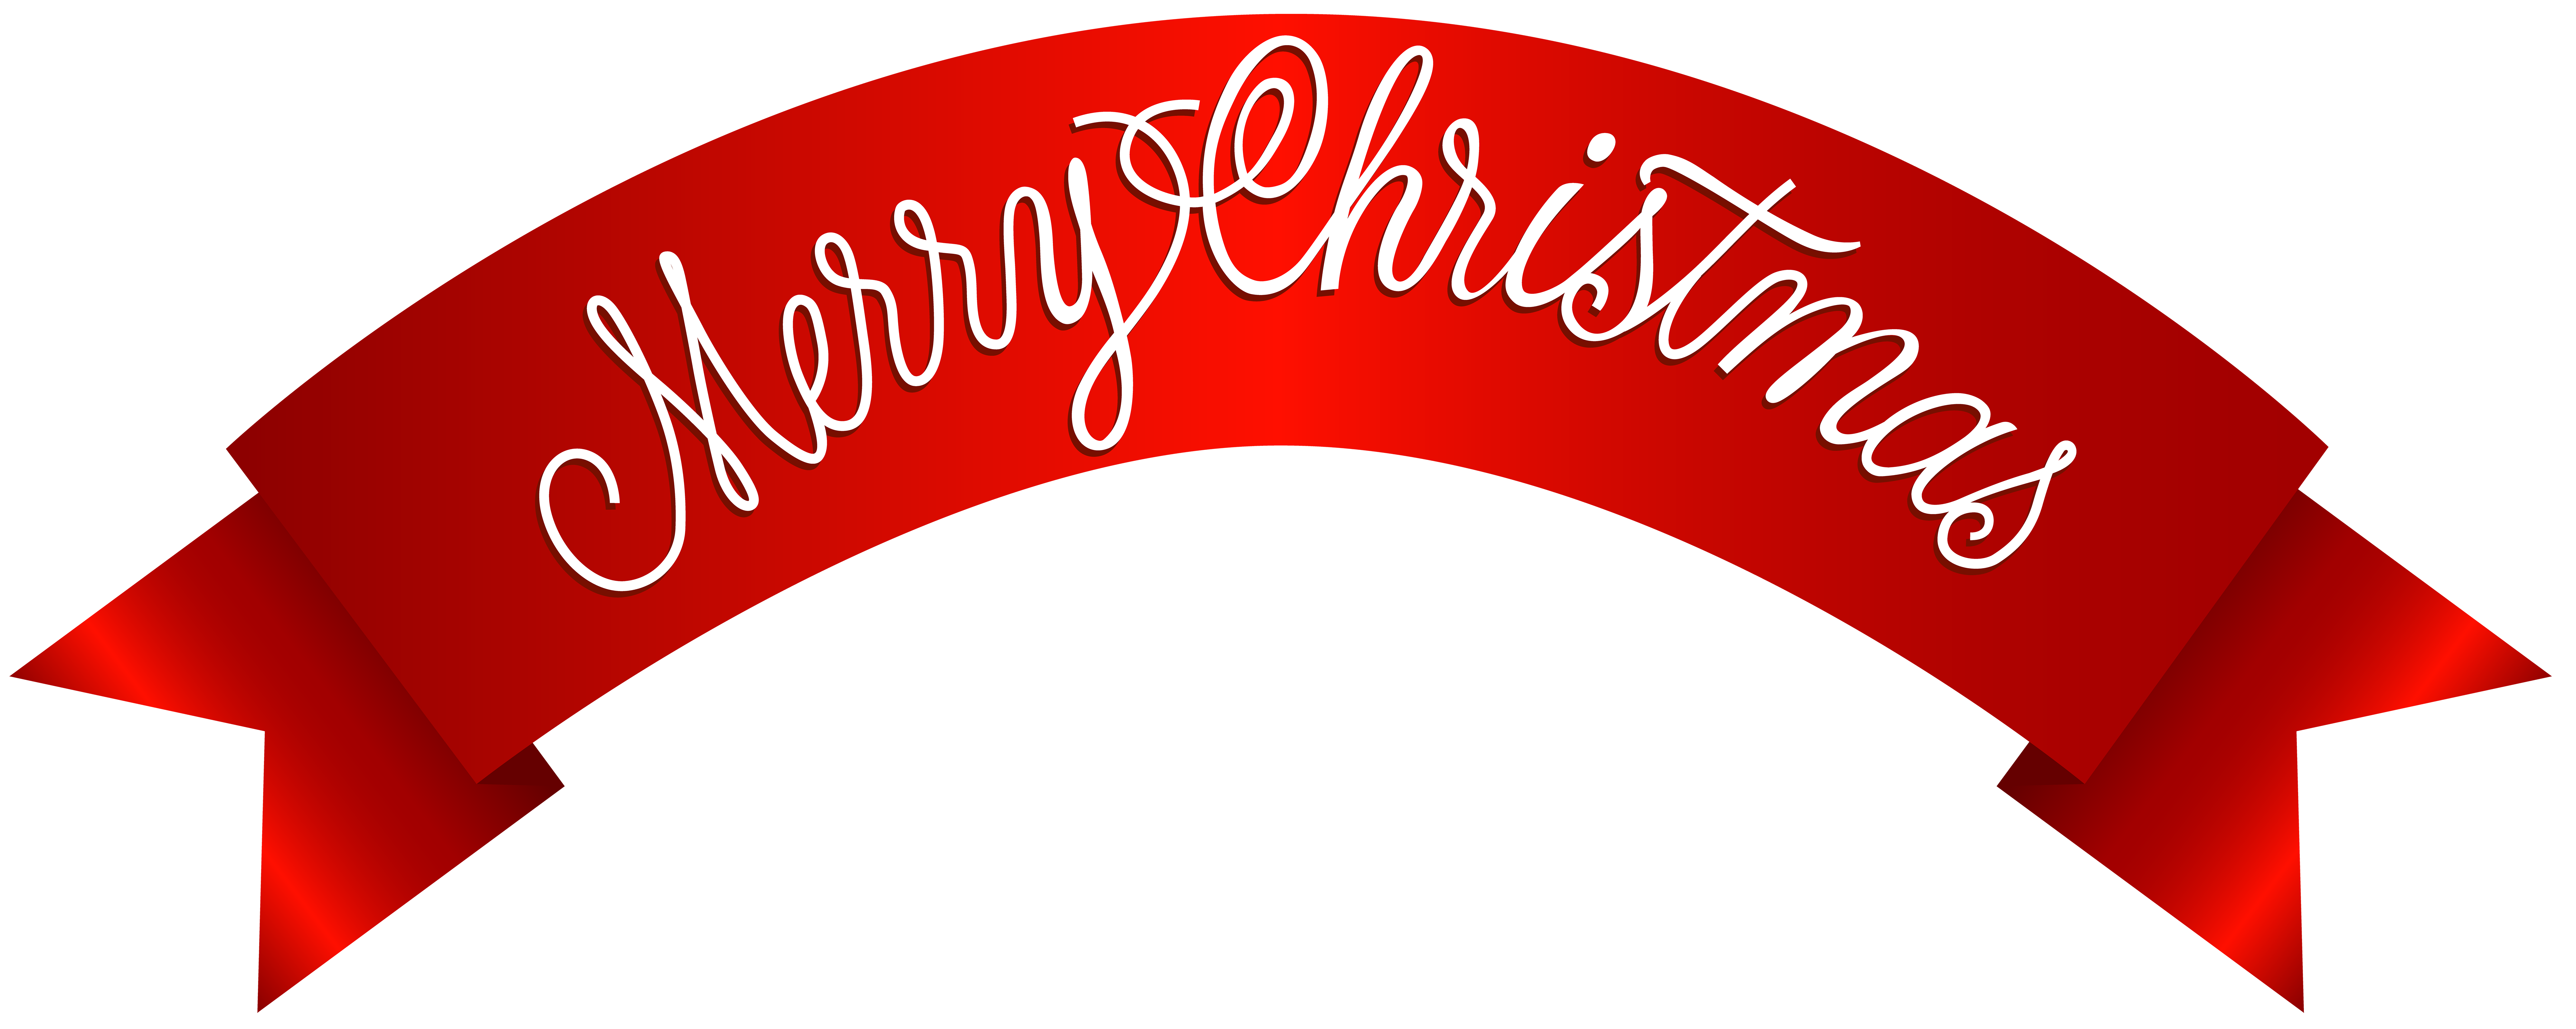 Merry Christmas Banner Png Clip Art Image Gallery Yopriceville High Quali Christmas Banner Printable Merry Christmas Banner Printable Merry Christmas Text